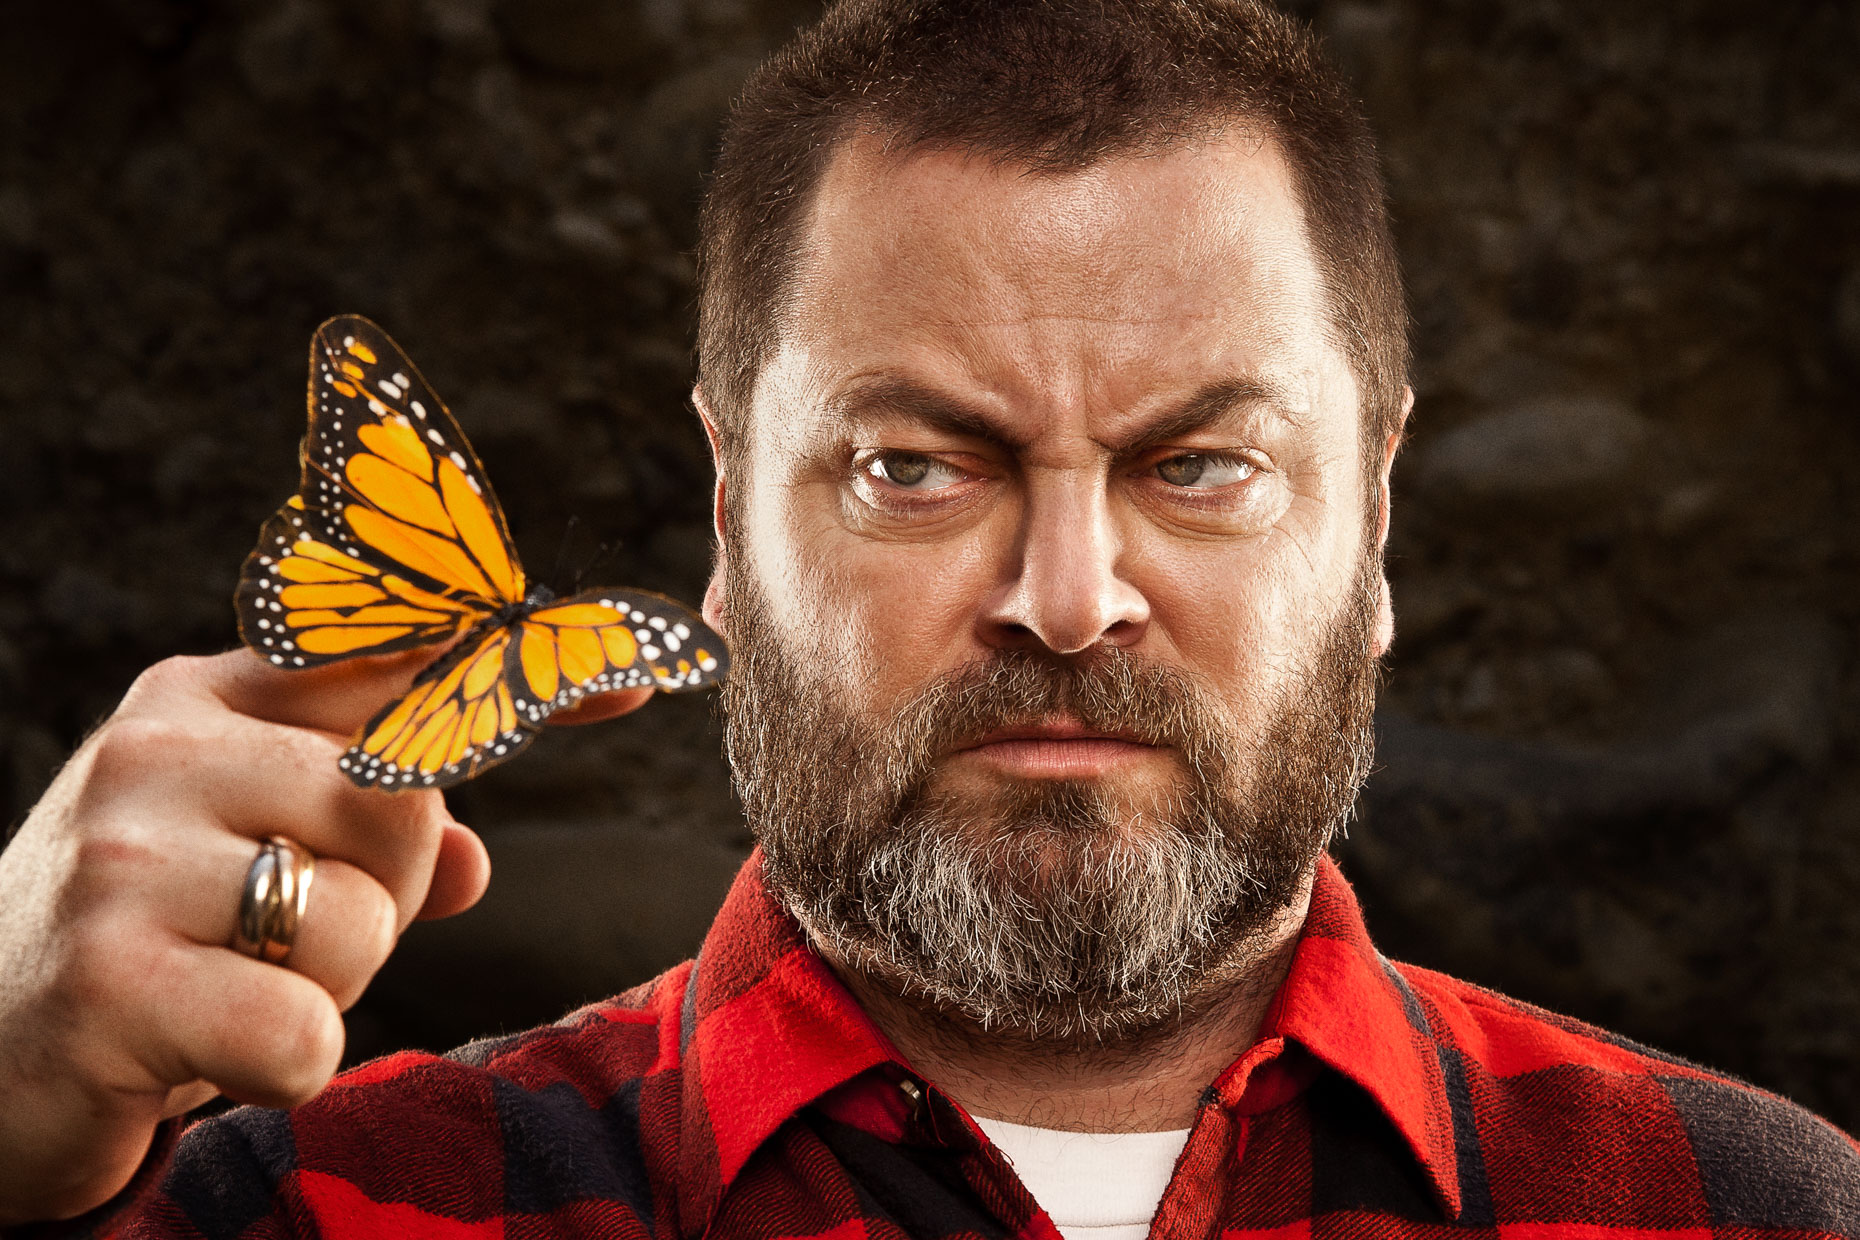 NickOfferman